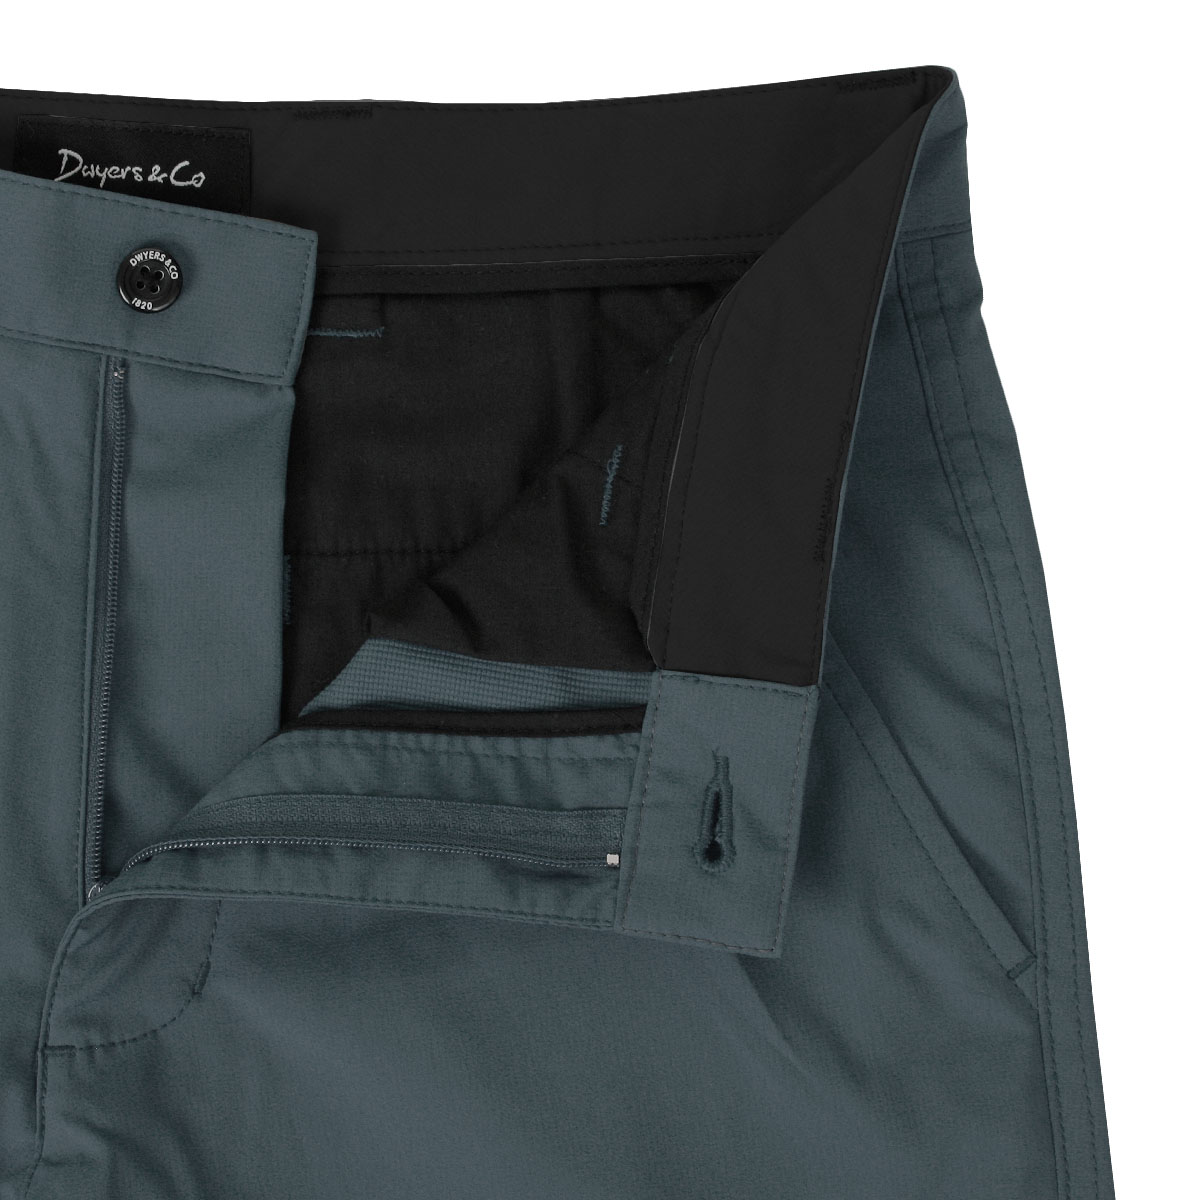 Dwyers-amp-Co-Mens-Matchplay-Stretch-Lightweight-Golf-Trousers-38-OFF-RRP thumbnail 21